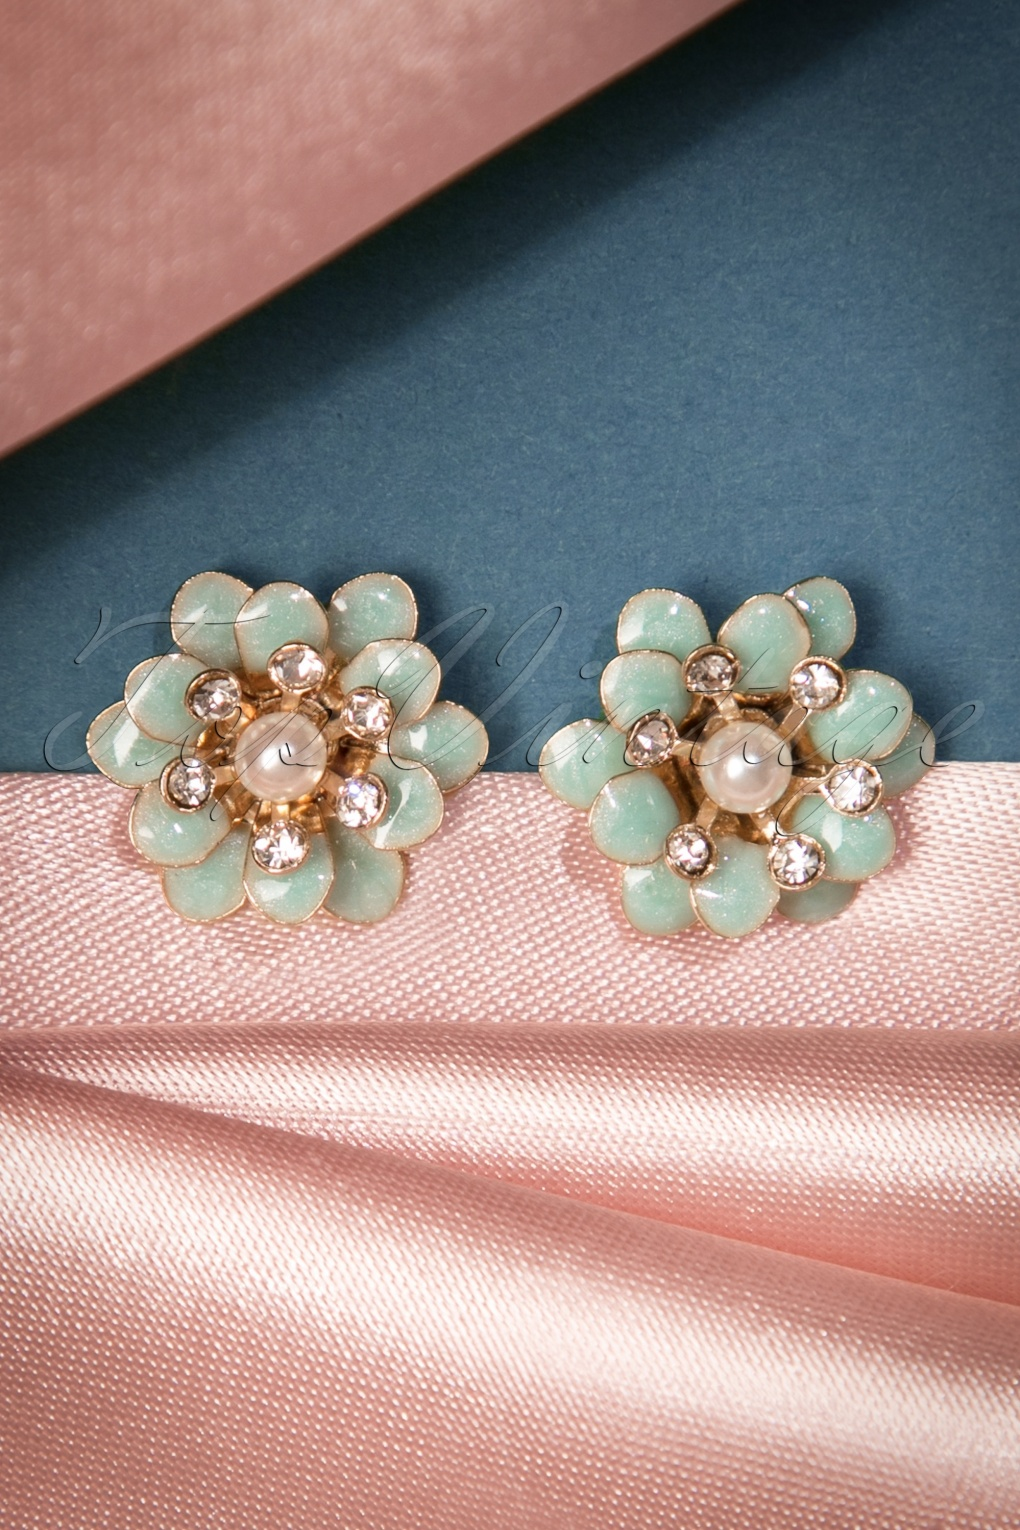 1960s Costume Jewelry – 1960s Style Jewelry 60s Lacey Flower Earrings in Duck Egg Blue £13.44 AT vintagedancer.com